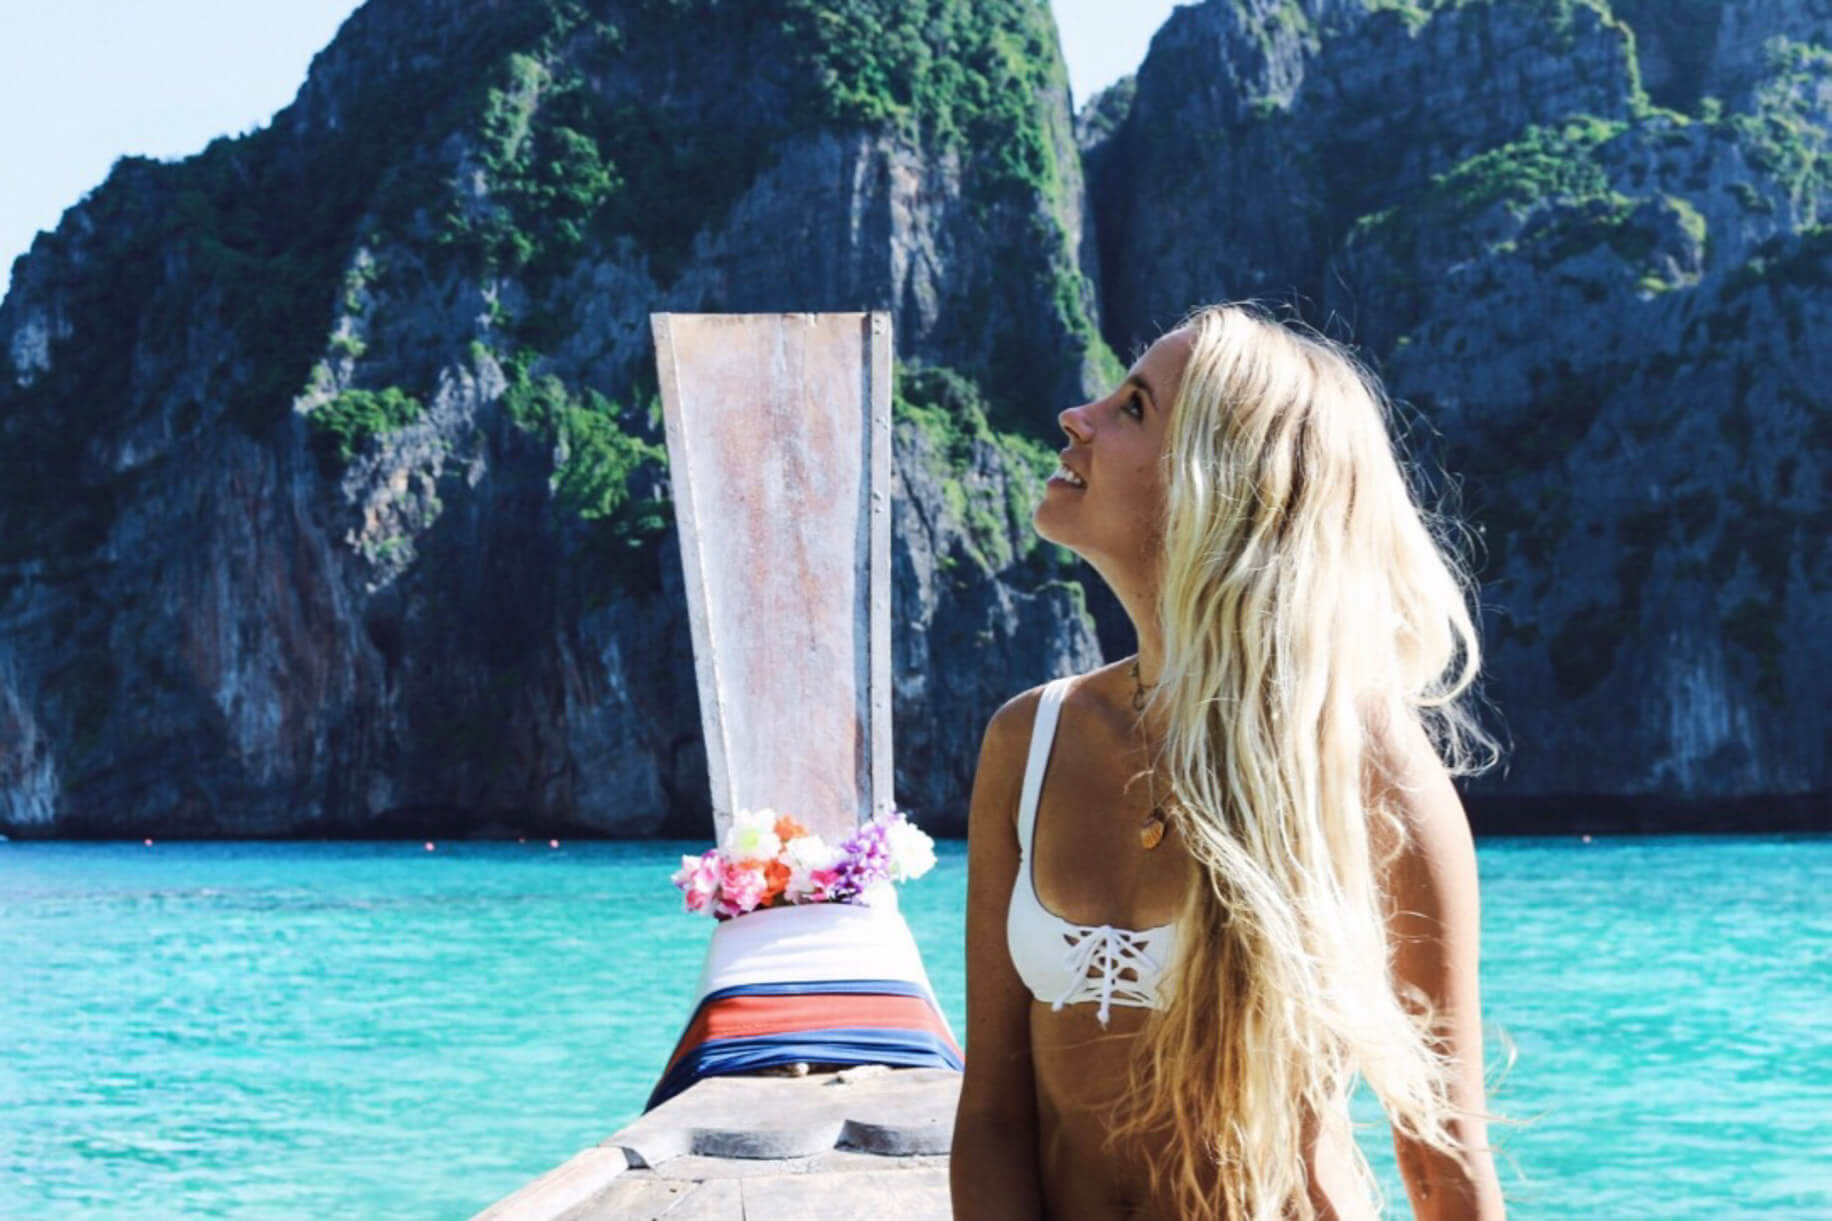 couples coordinates alex on boat koh phi phi krabi thailand